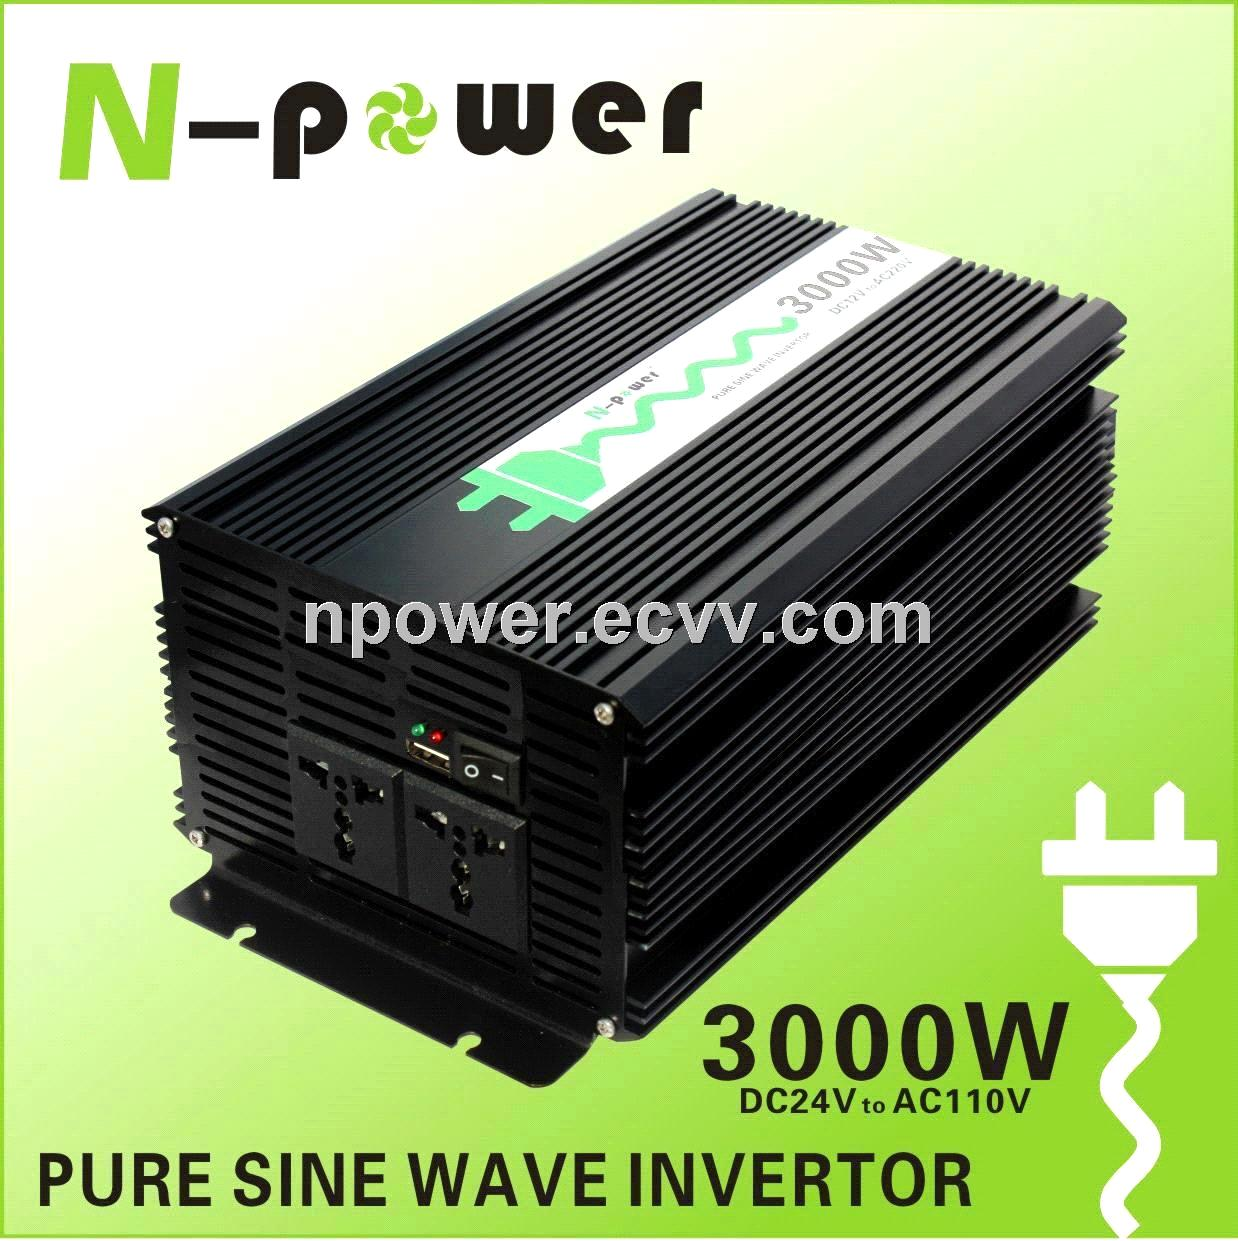 3000W Pure Sine Wave DC24V to AC110V Power Inverter with USB